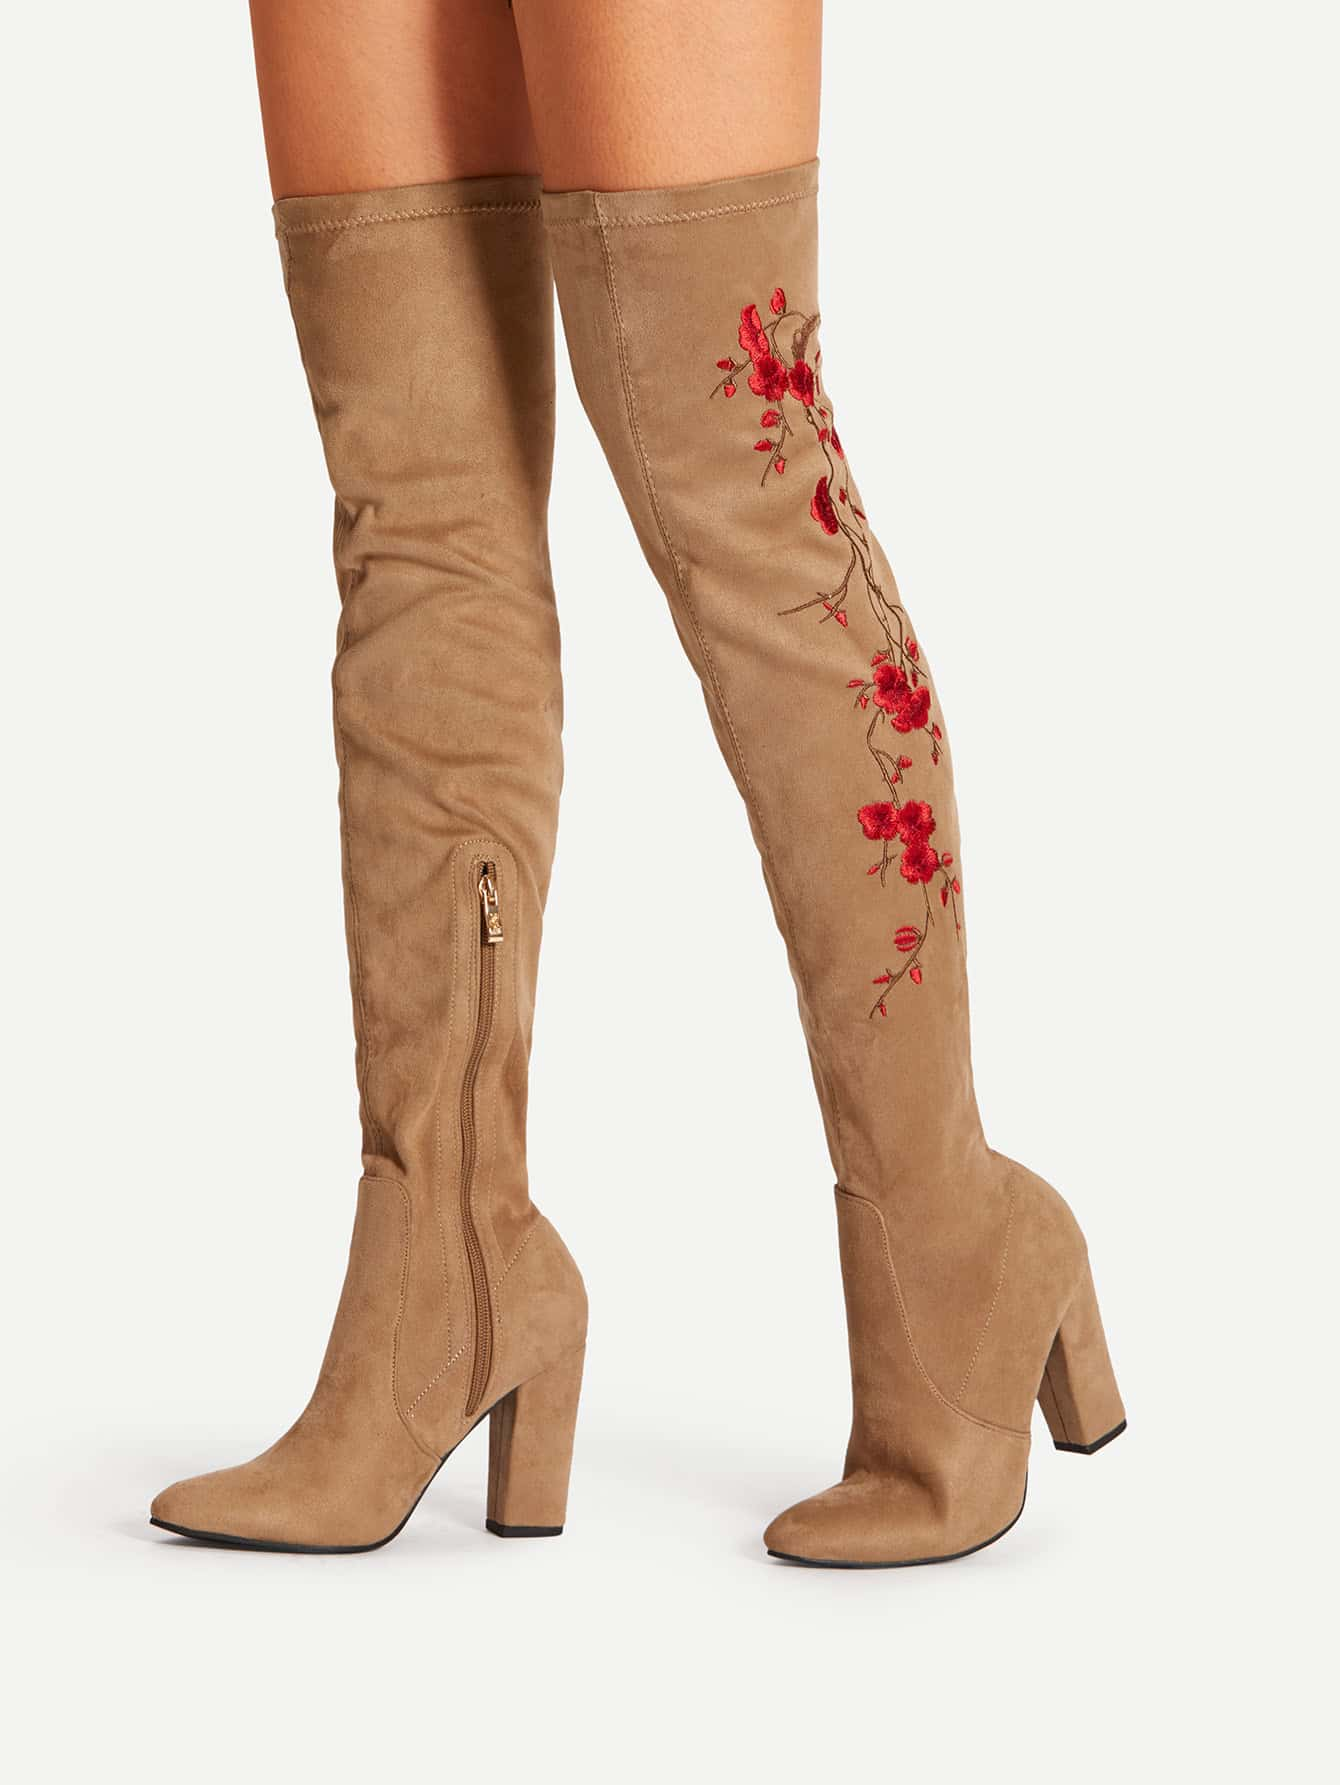 Floral Embroidery Block Heeled Over The Knee Boots peter block stewardship choosing service over self interest